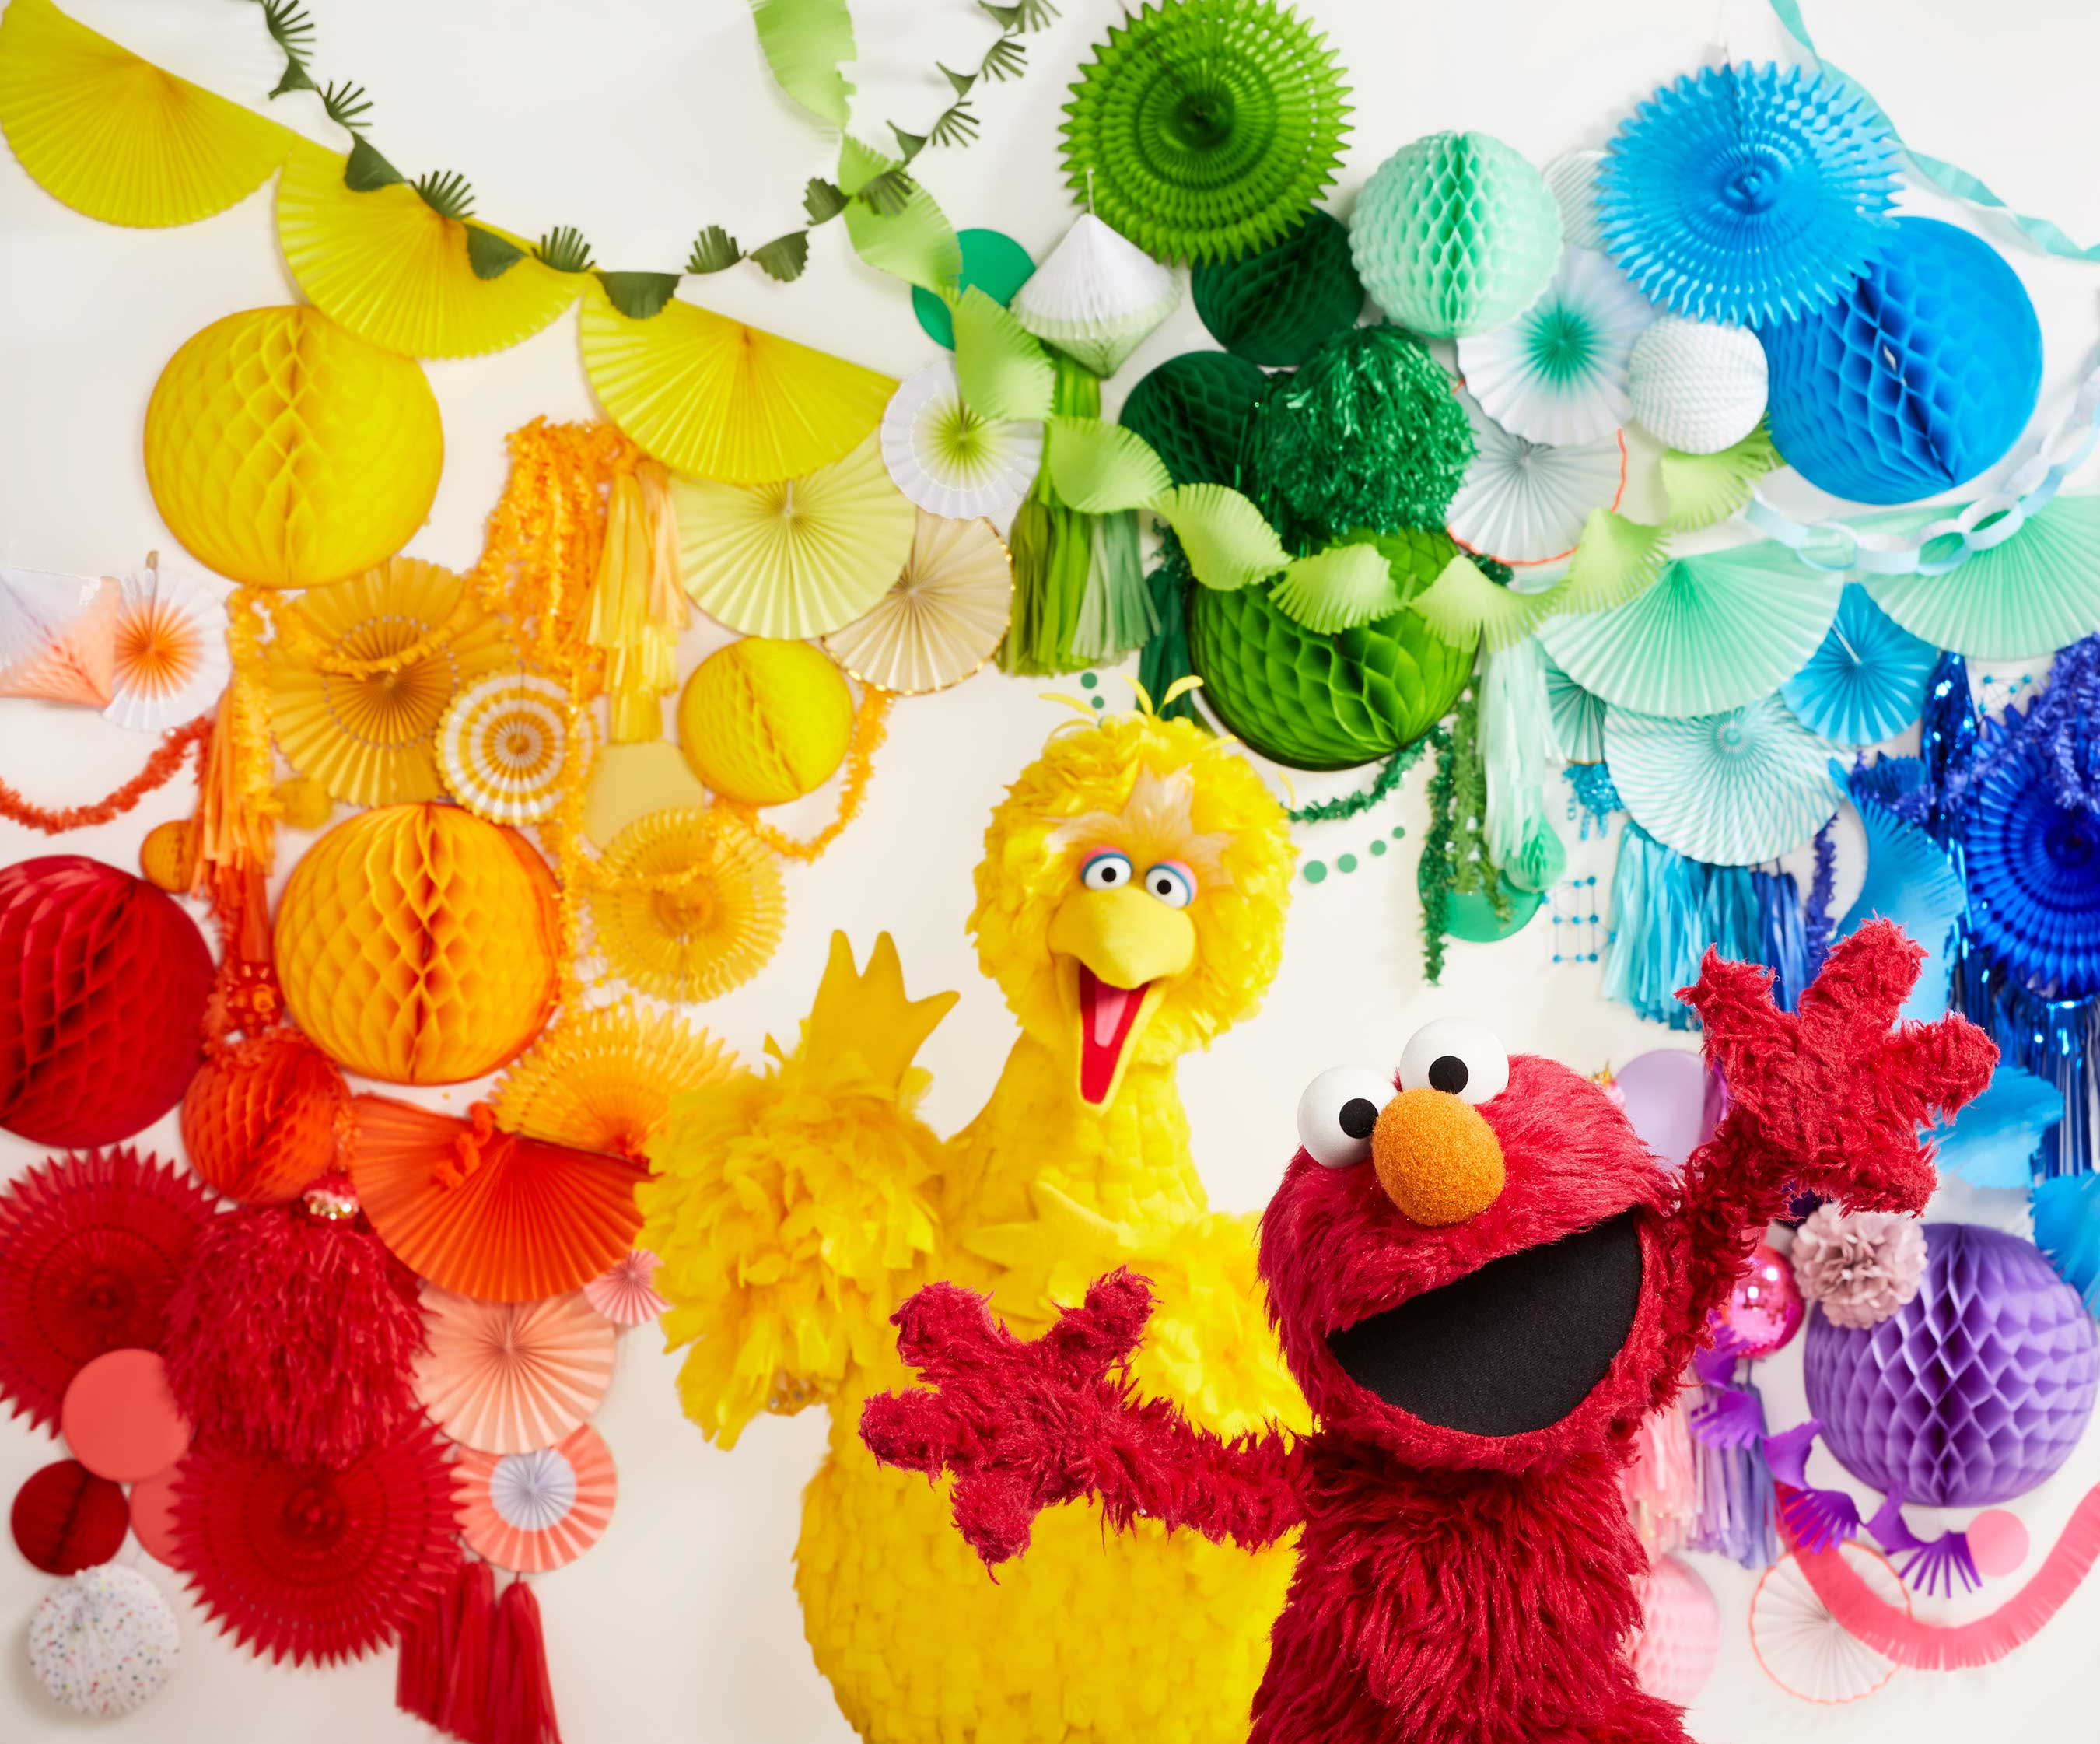 The Sesame Street Muppets will perform a musical medley of patriotic favorites and iconic songs from the groundbreaking children's television series, currently celebrating a landmark 50 years of learning and fun.